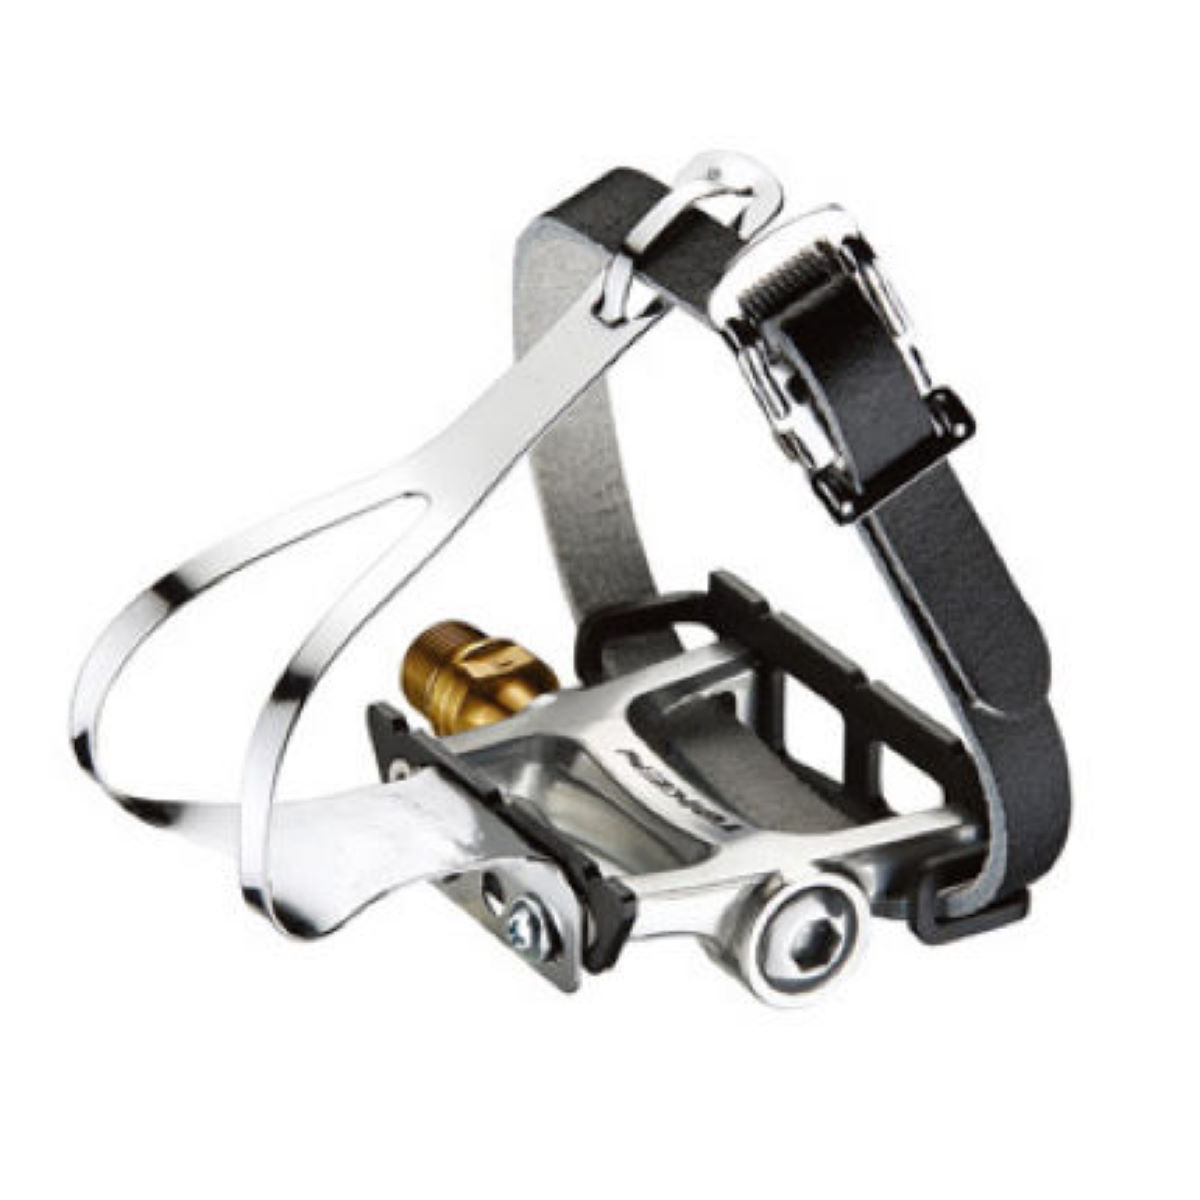 Token Tk456 Track Pedal With Toe Clip - One Size Silver  Pedal Spares